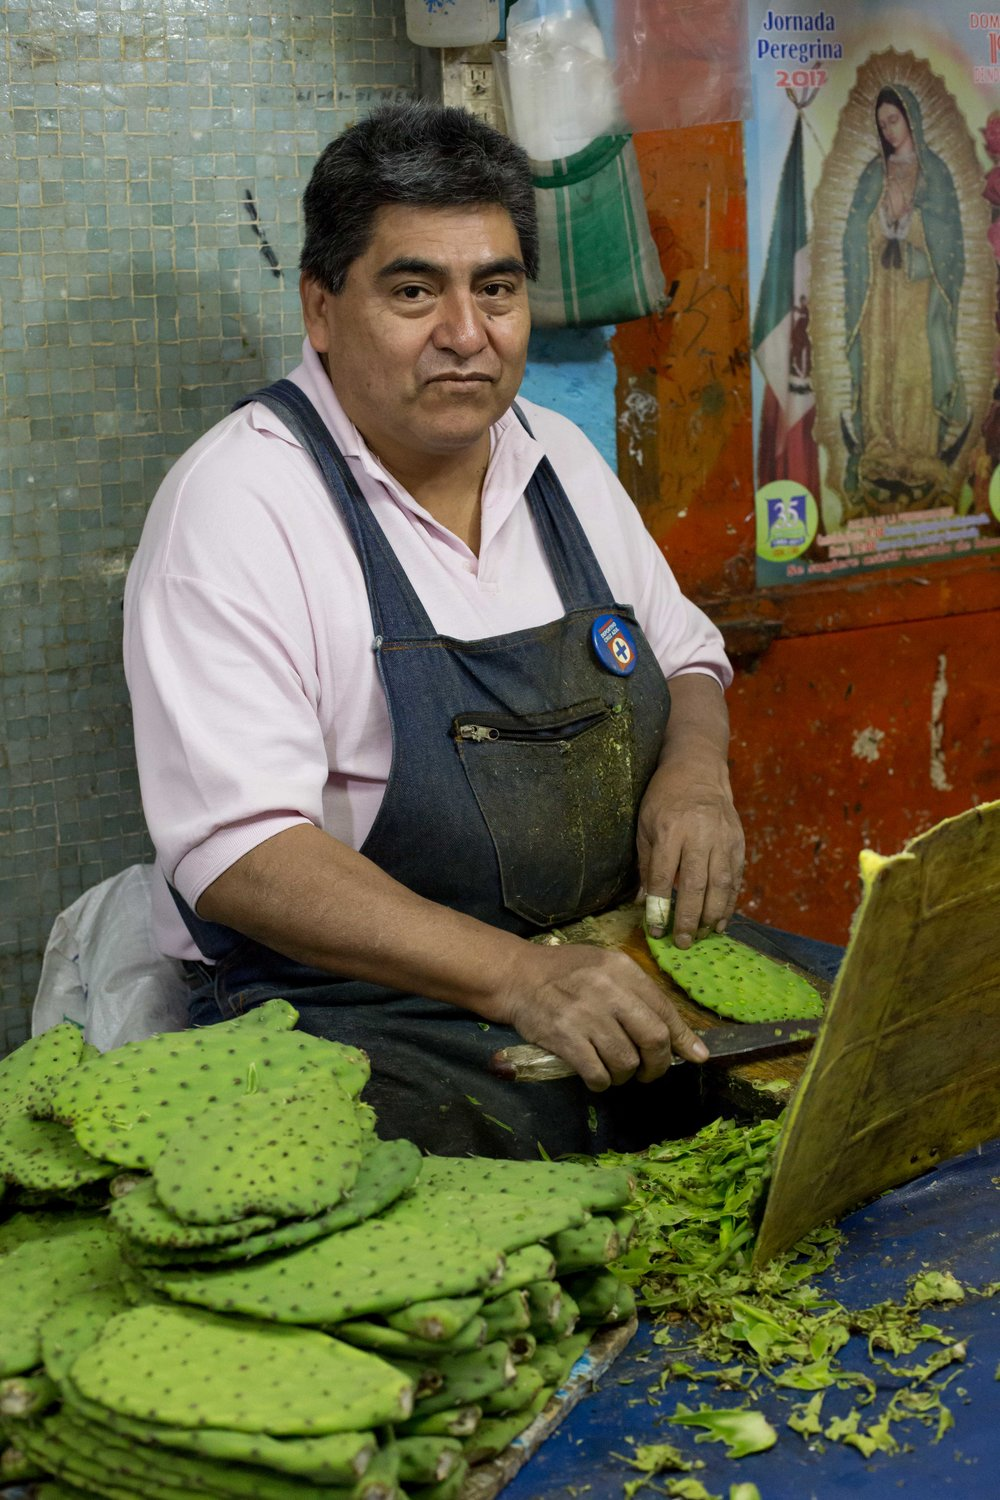 Market, Mexico City